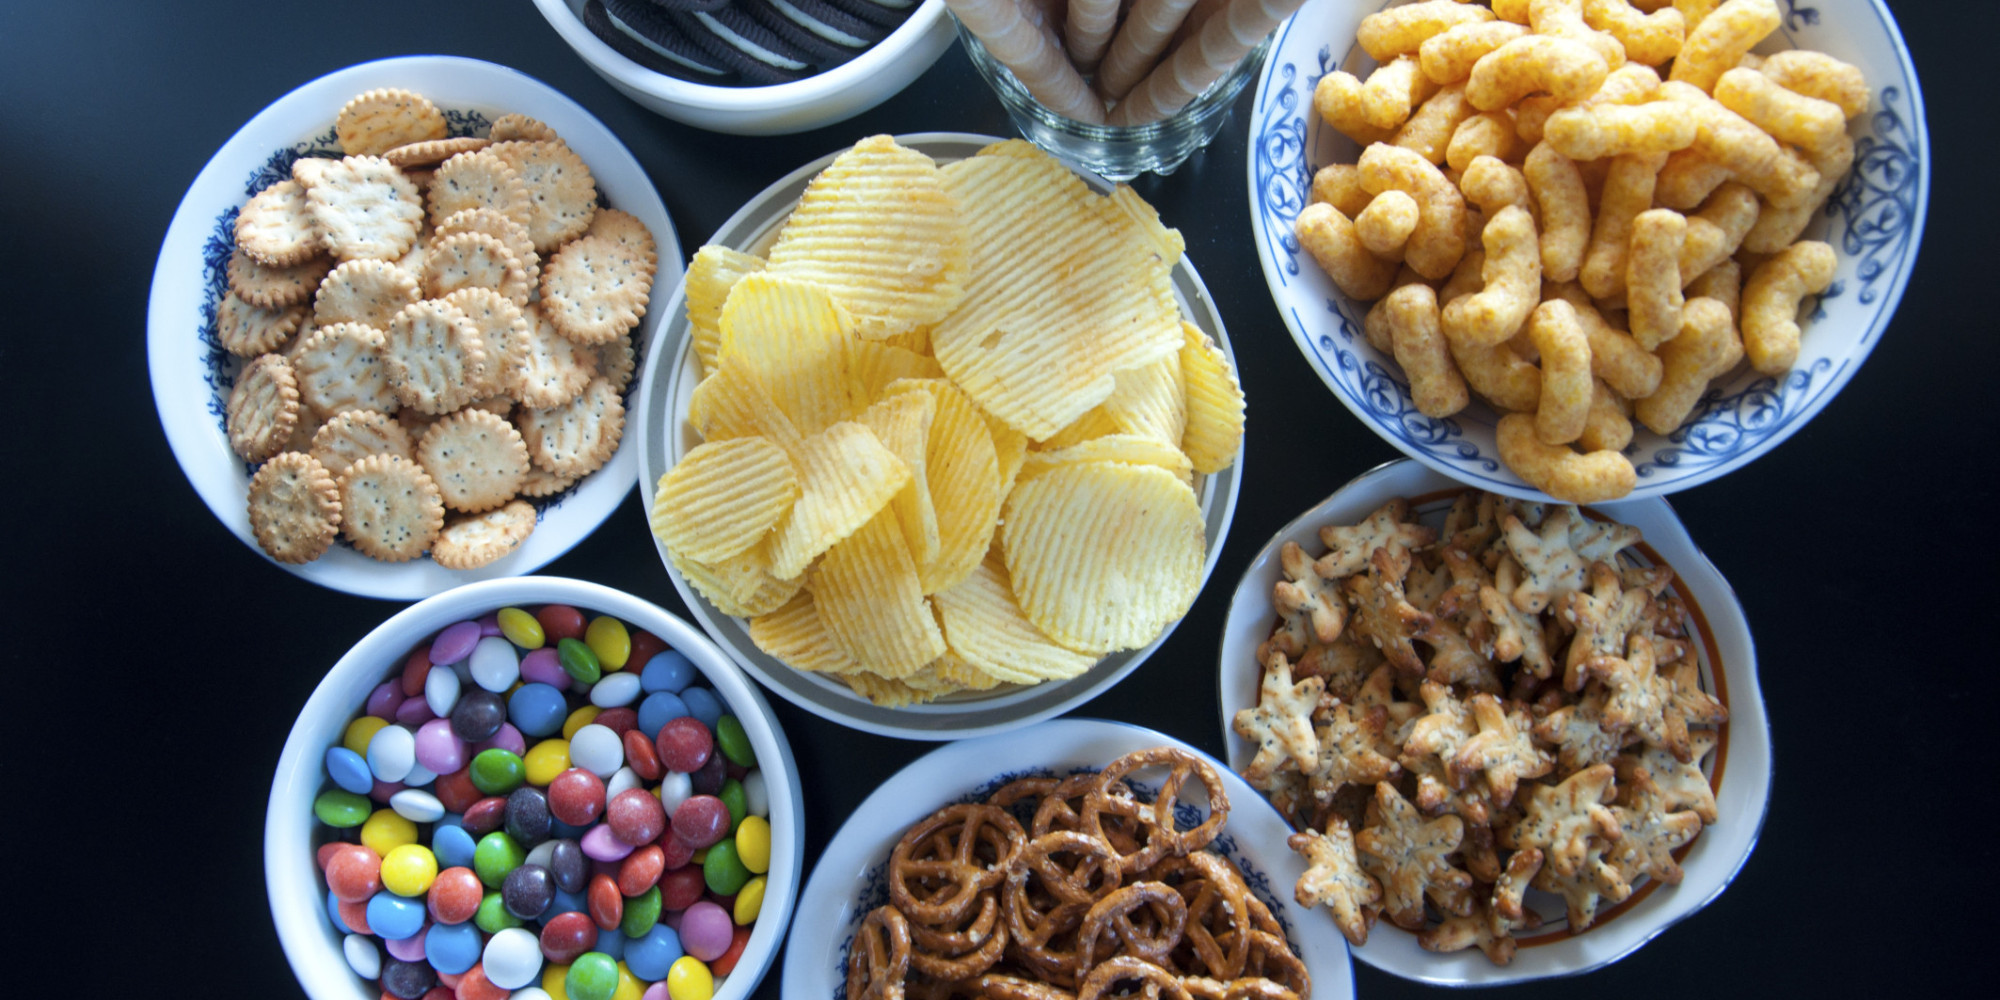 Healthy Processed Snacks  Avoid Junk Food How You Think About Food Could Affect